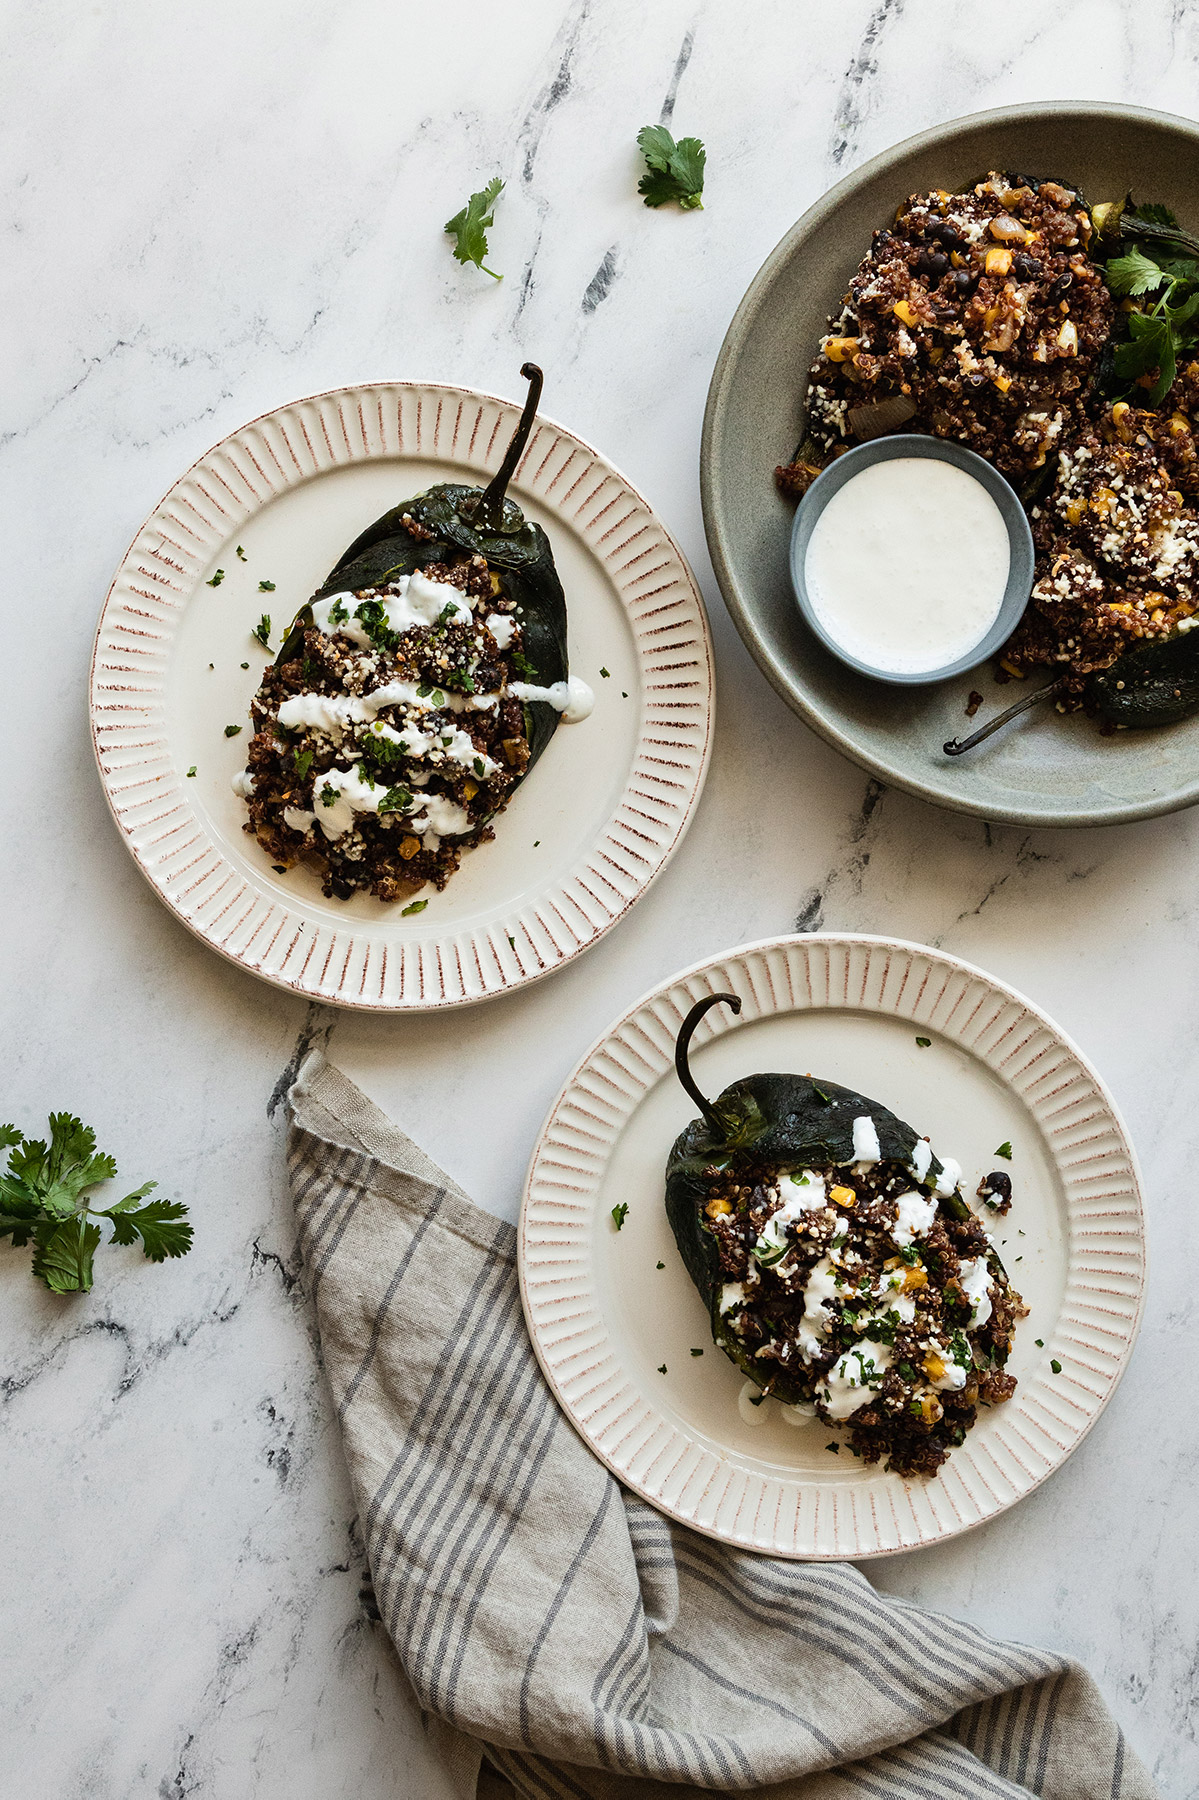 Three plates of vegetarian stuffed poblano peppers